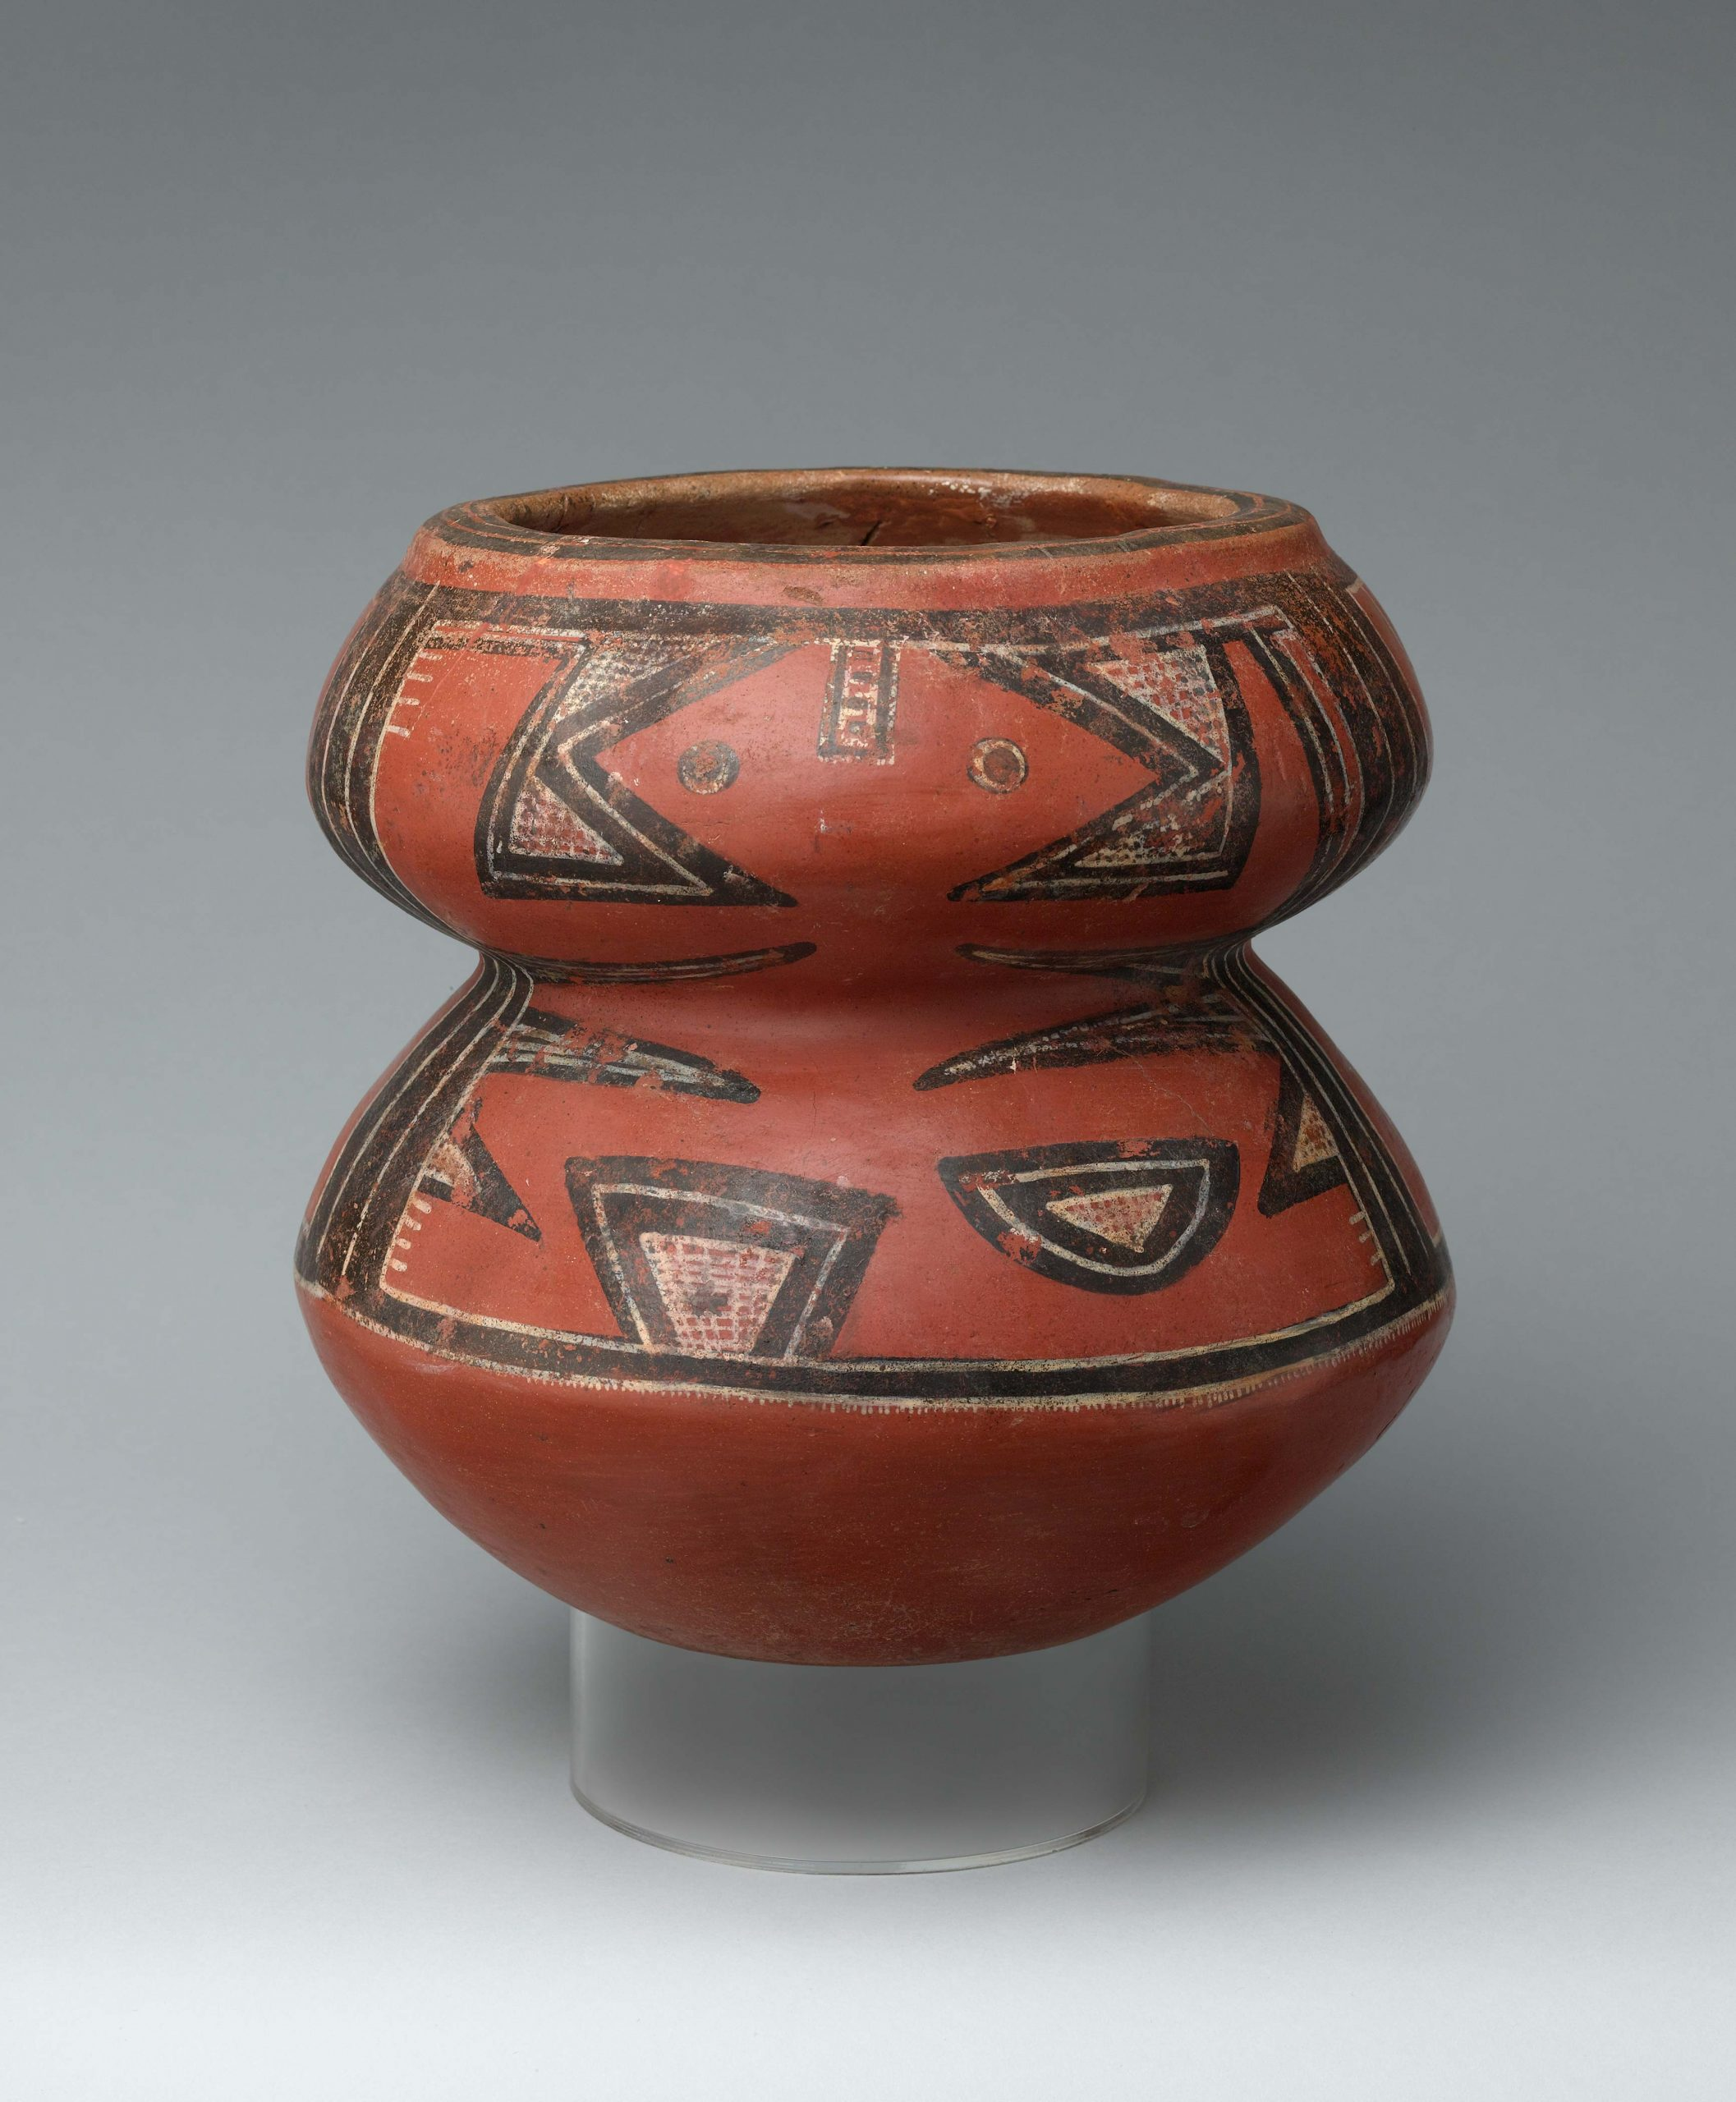 A Kewa jar painted beige and black, with two bands of design, and a rust-colored bottom.